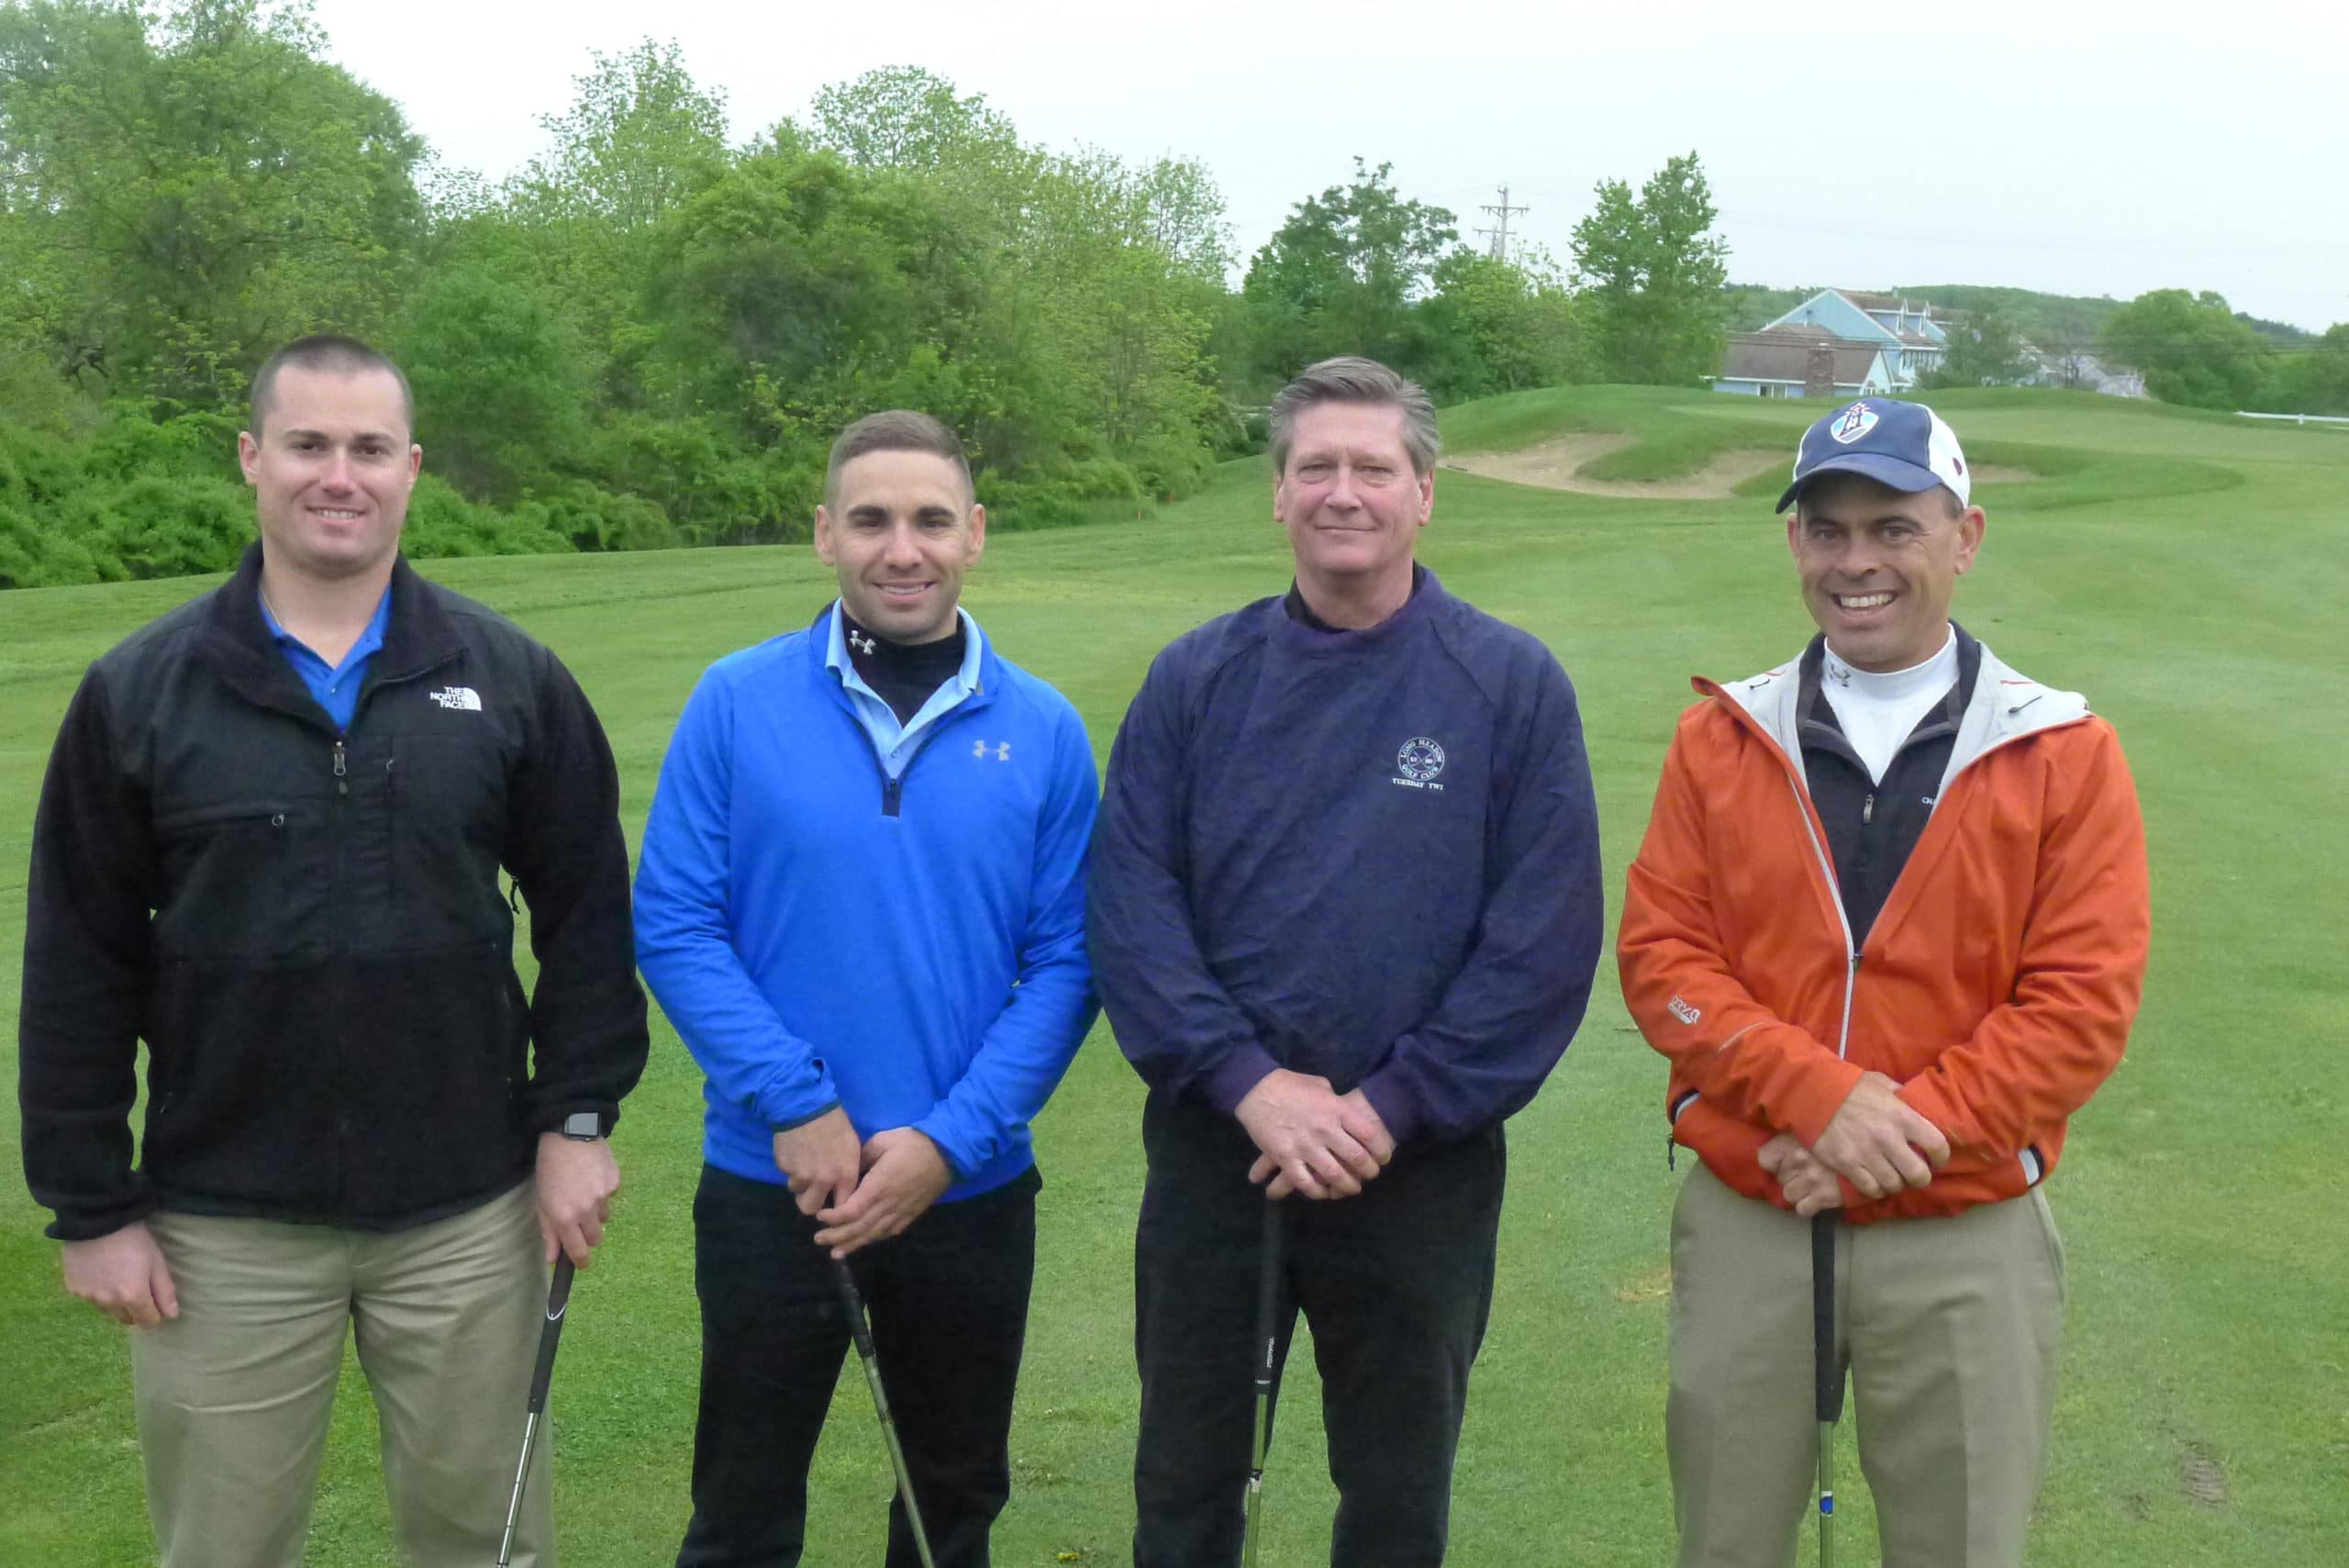 PHOTOS: 2017 NEMLEC Police Foundation Golf Tournament - NEMLEC